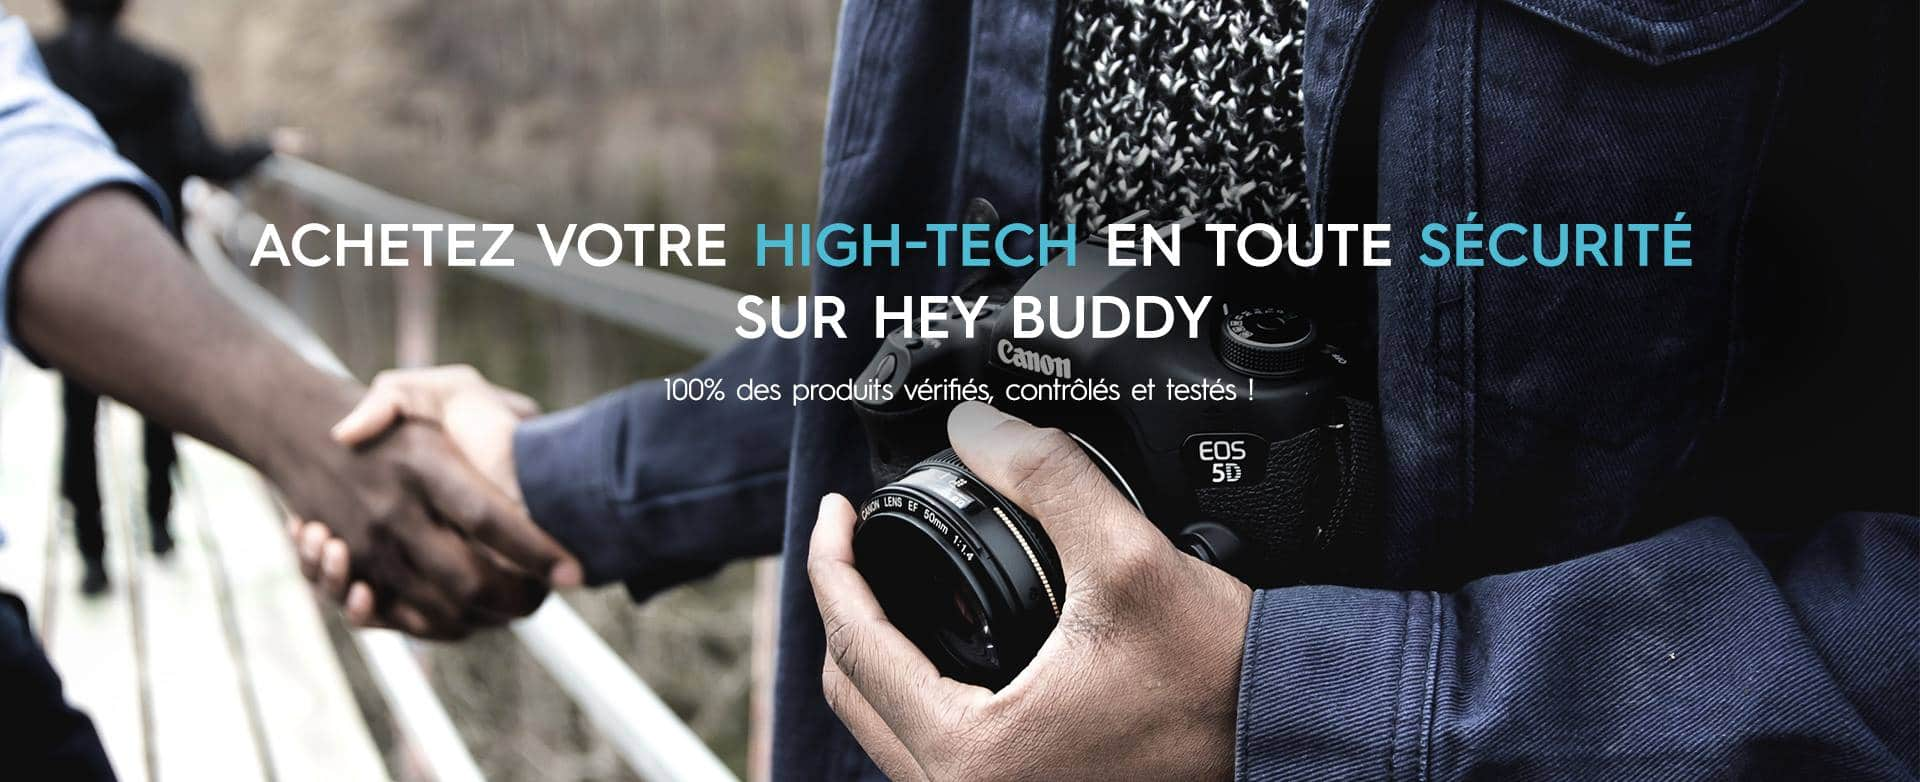 Hey Buddy : La start-up qui sécurise la vente entre particuliers !